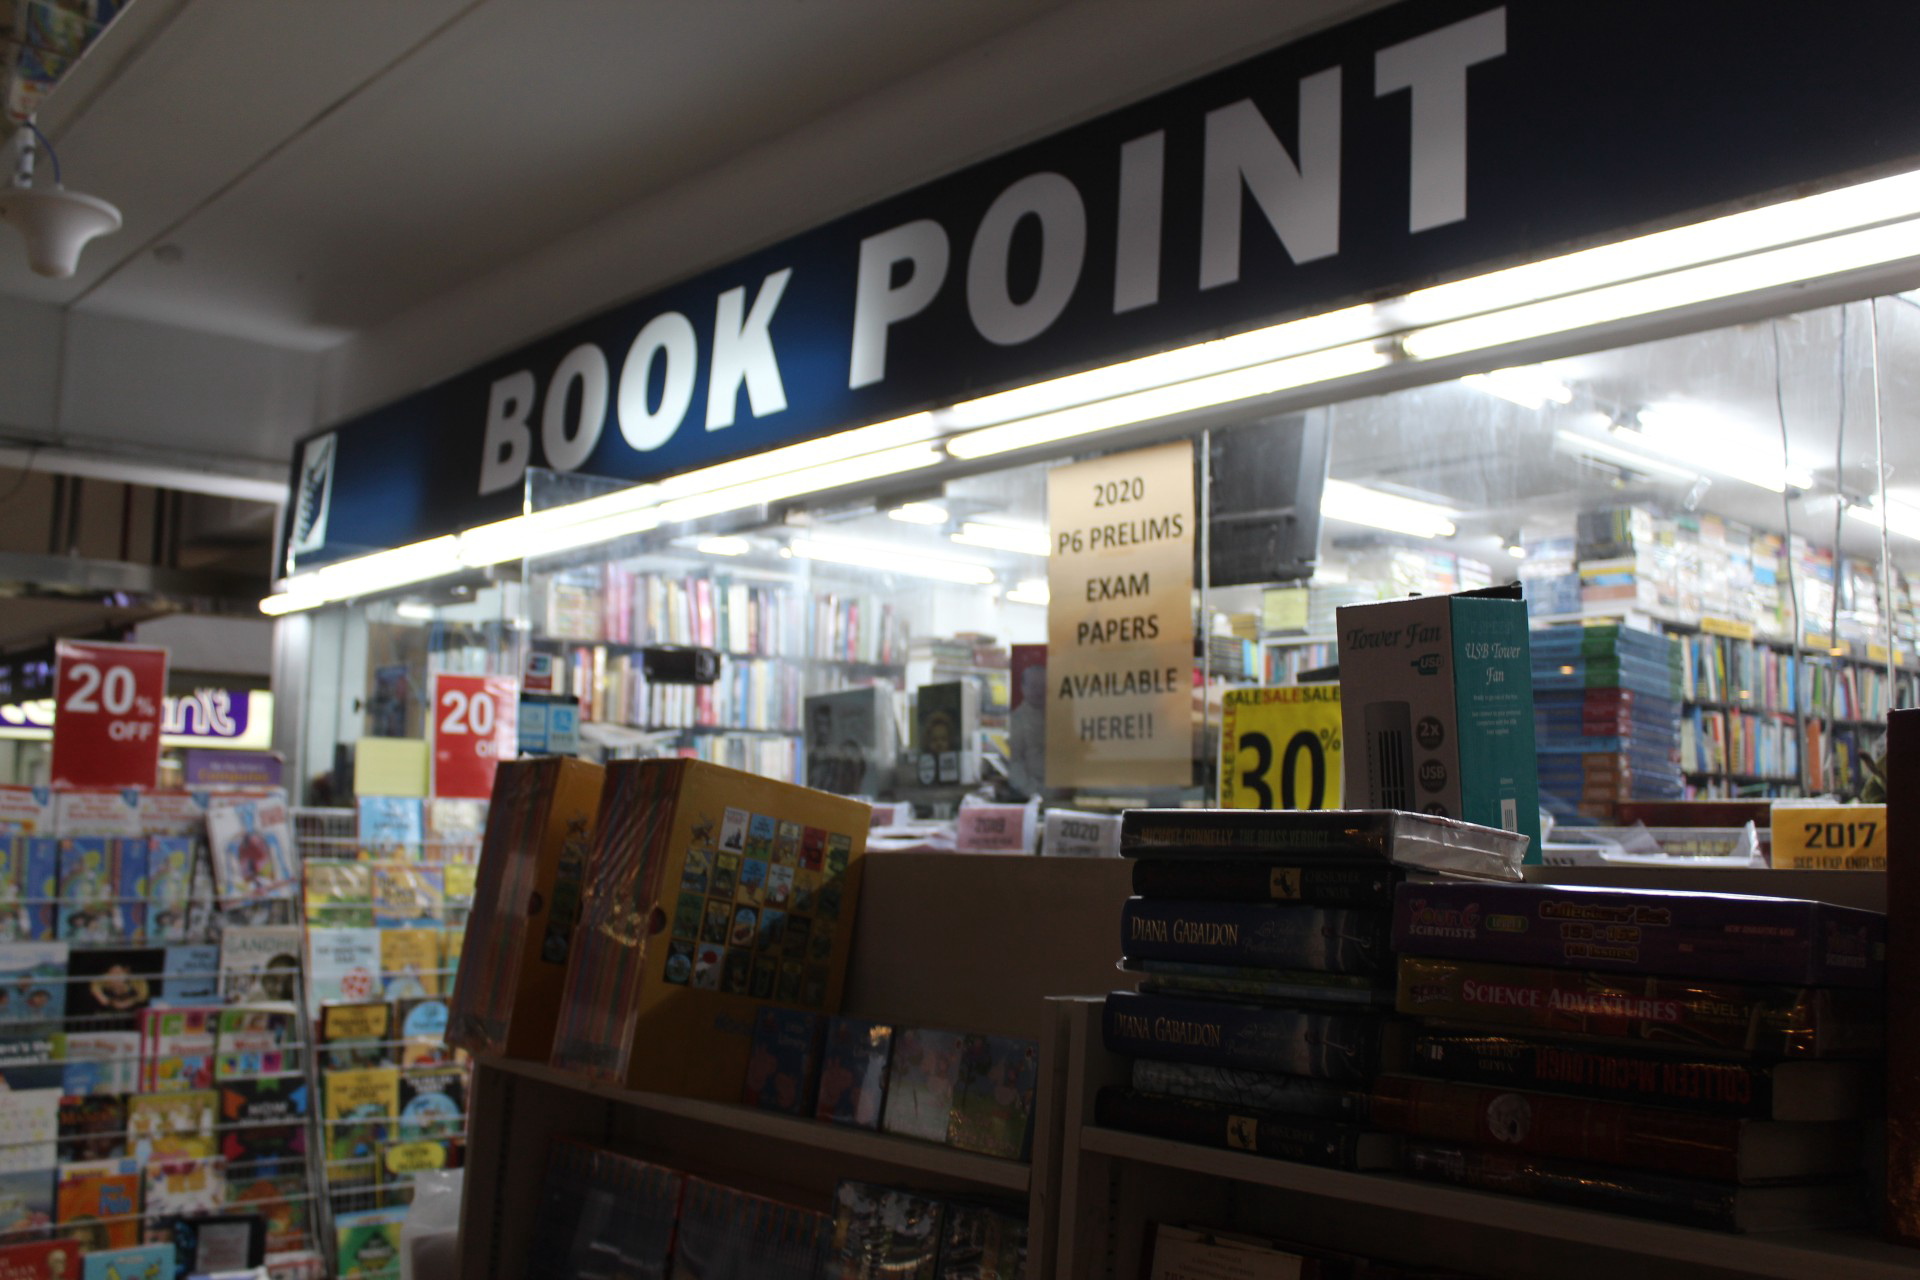 Book Point storefront